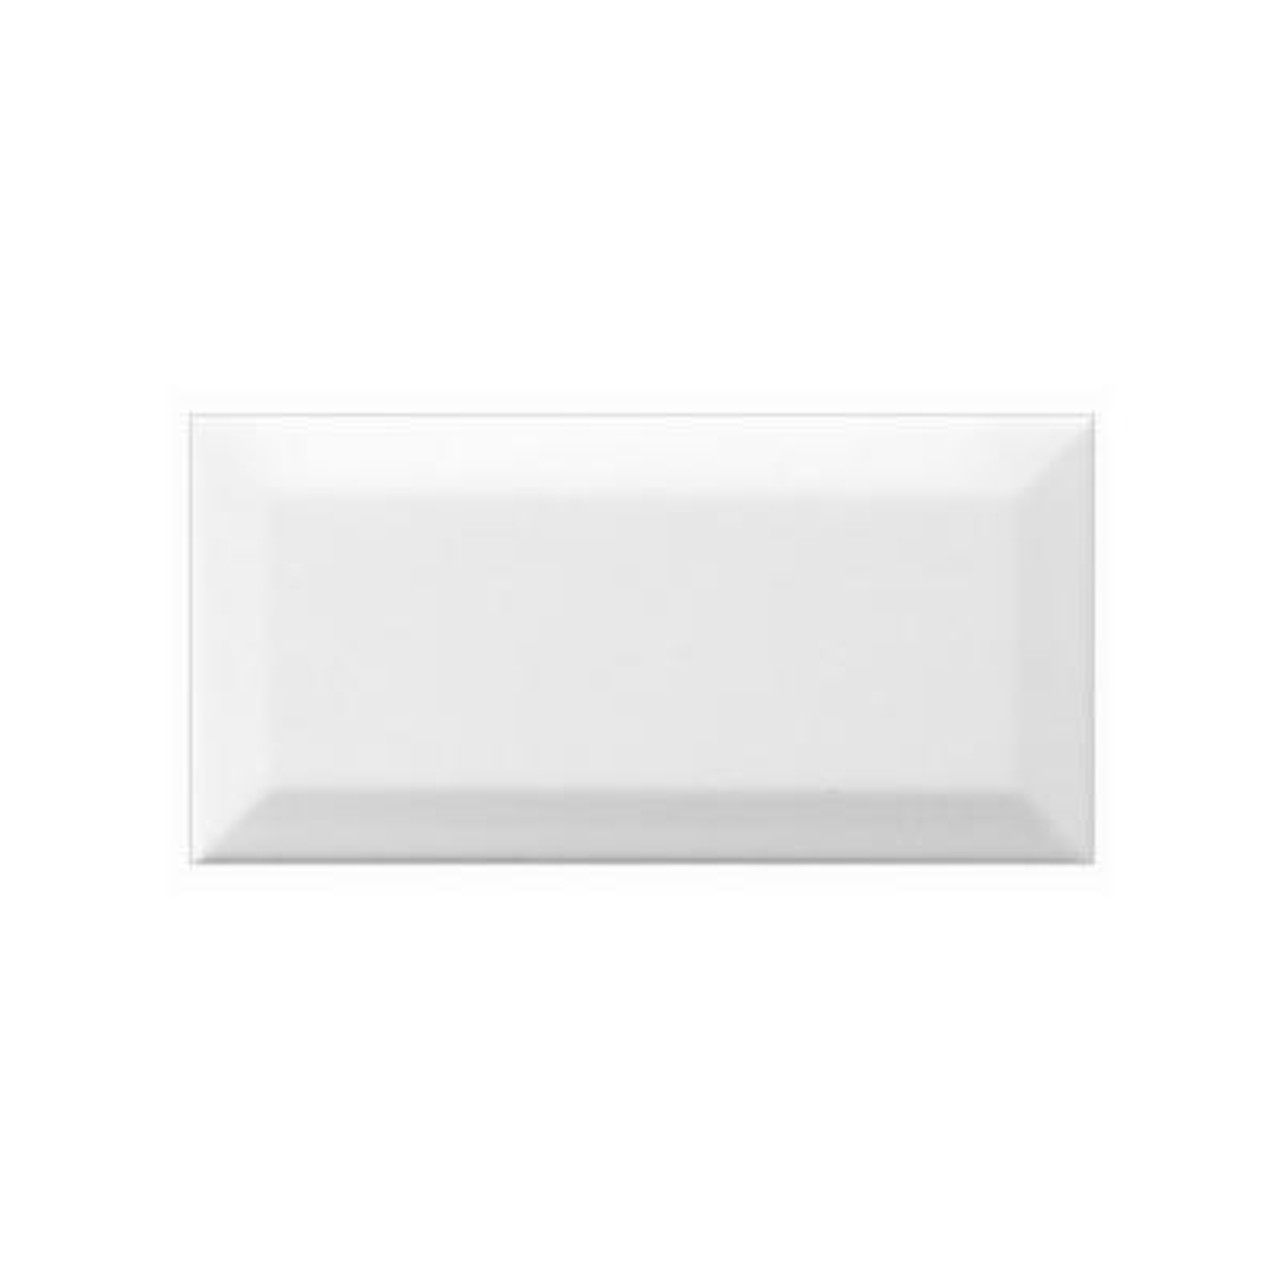 Neri White Beveled 3x6 Tiles Direct Store